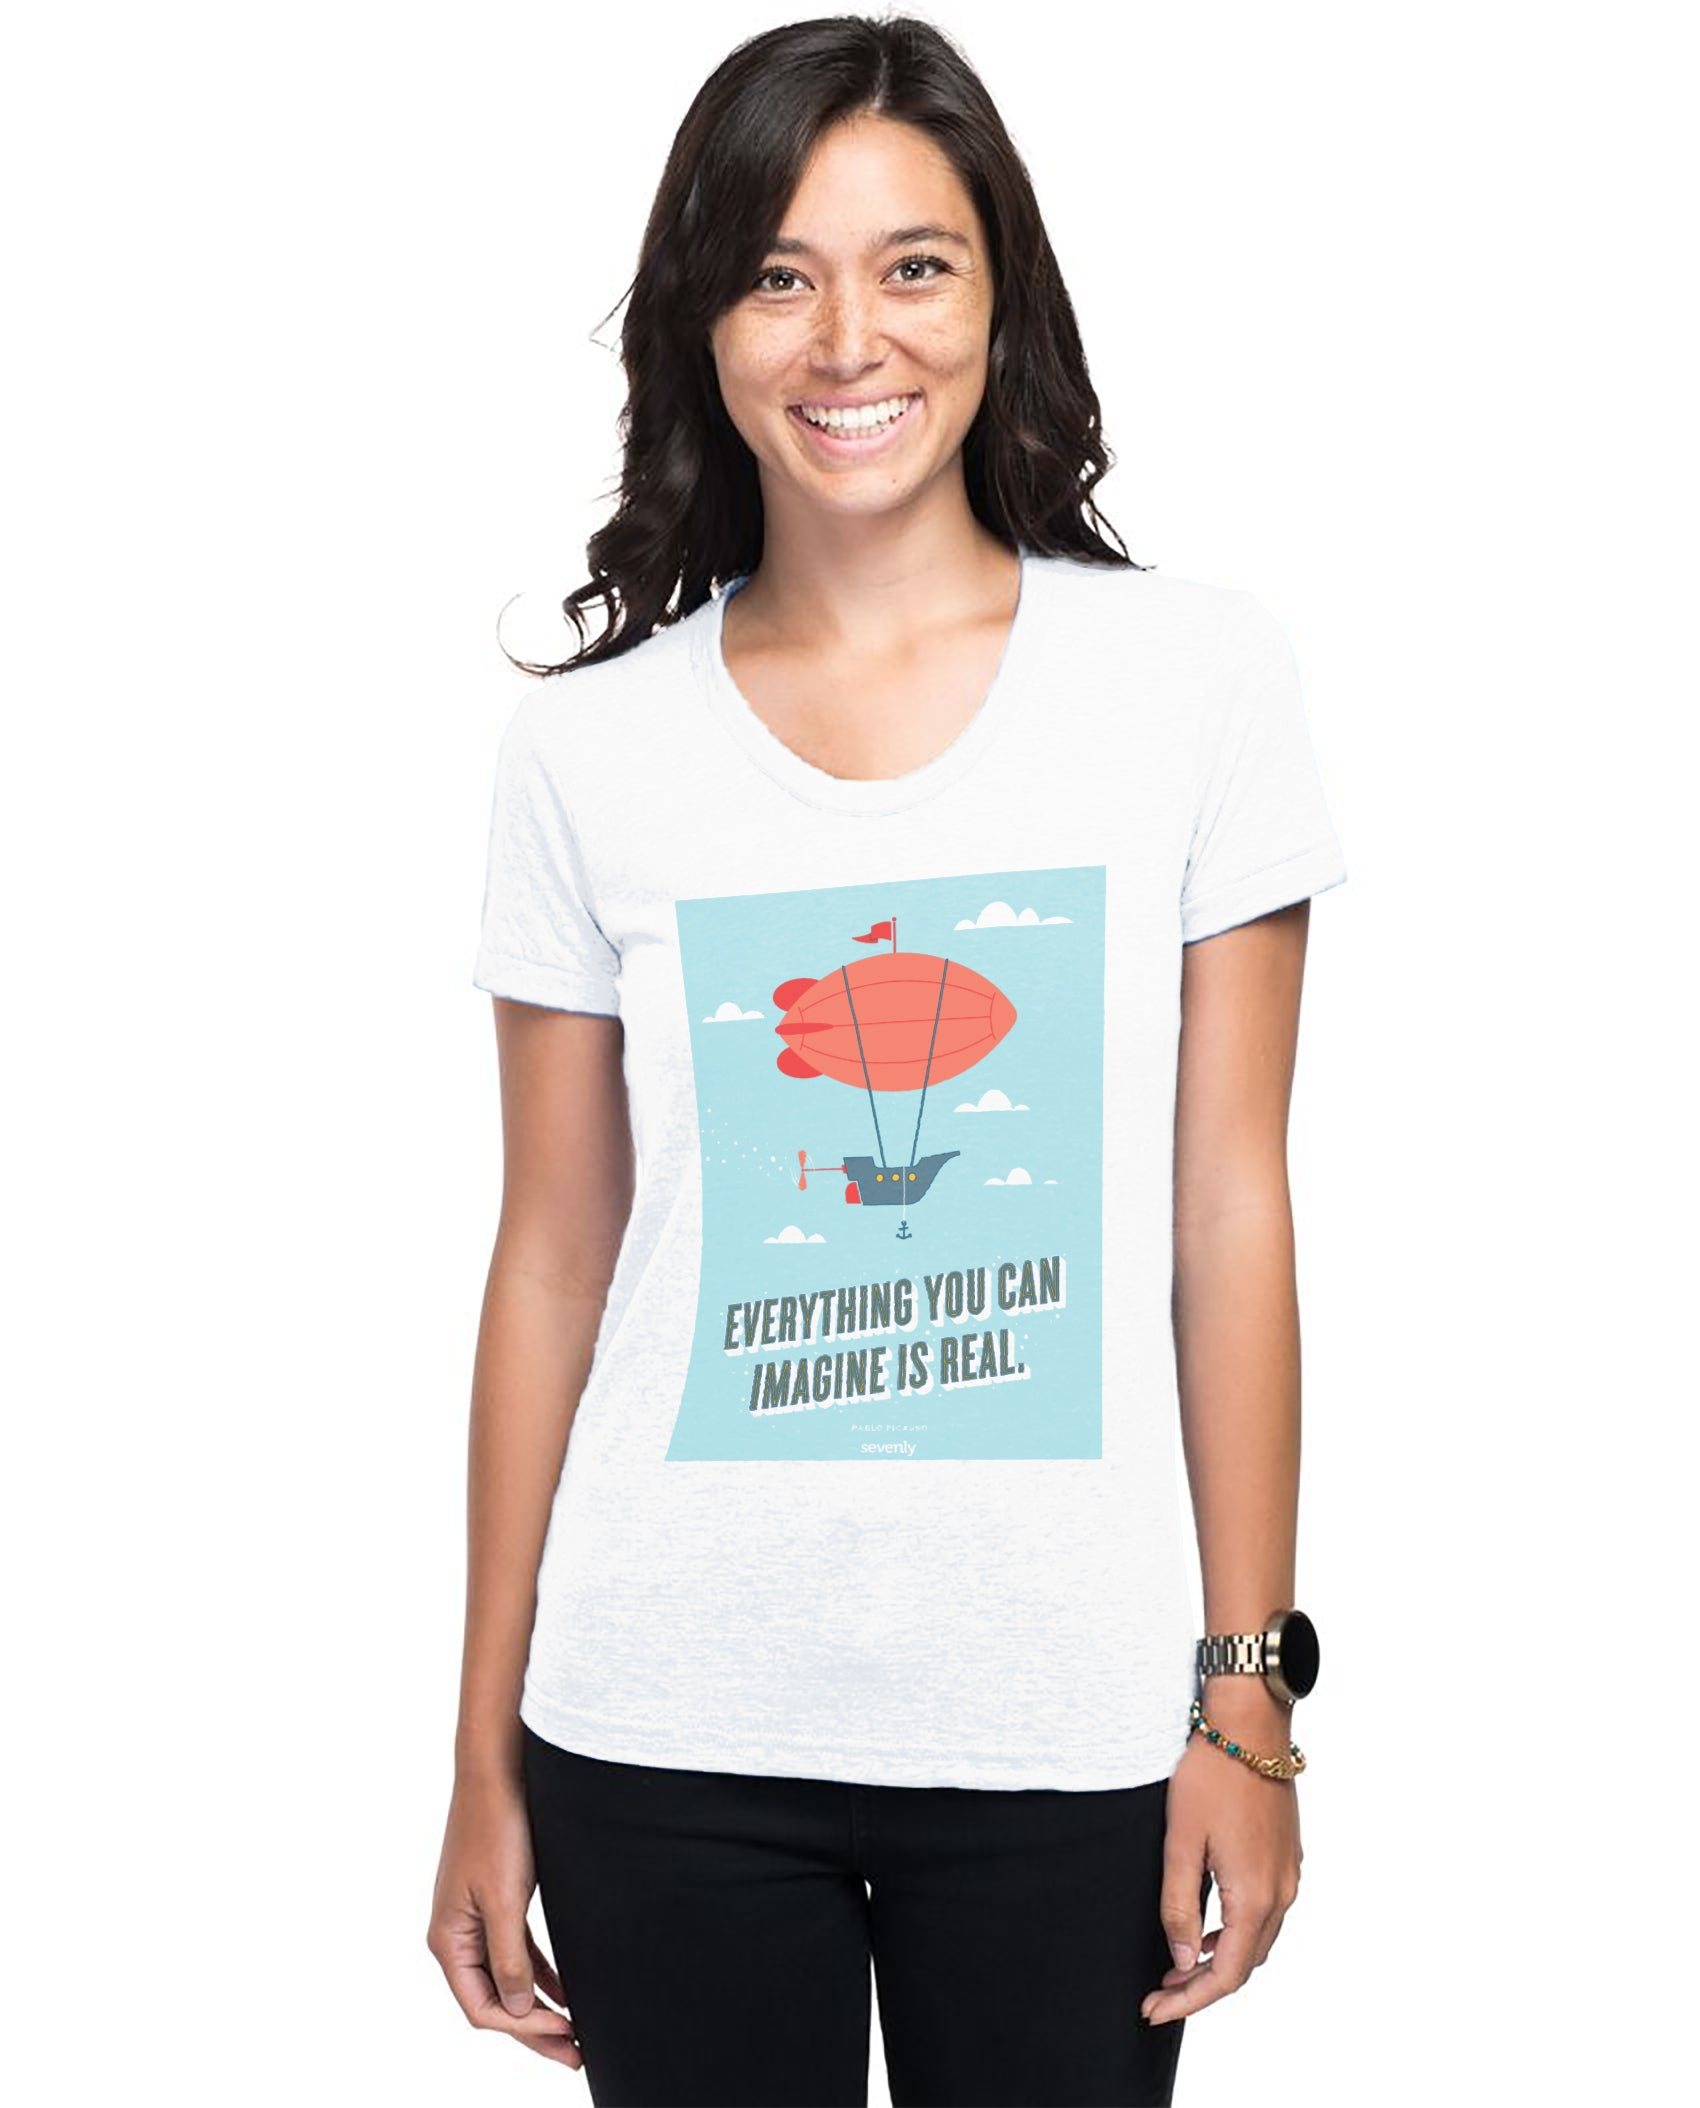 Picasso Airship Women's Triblend Slim Fit Short Sleeve Tee